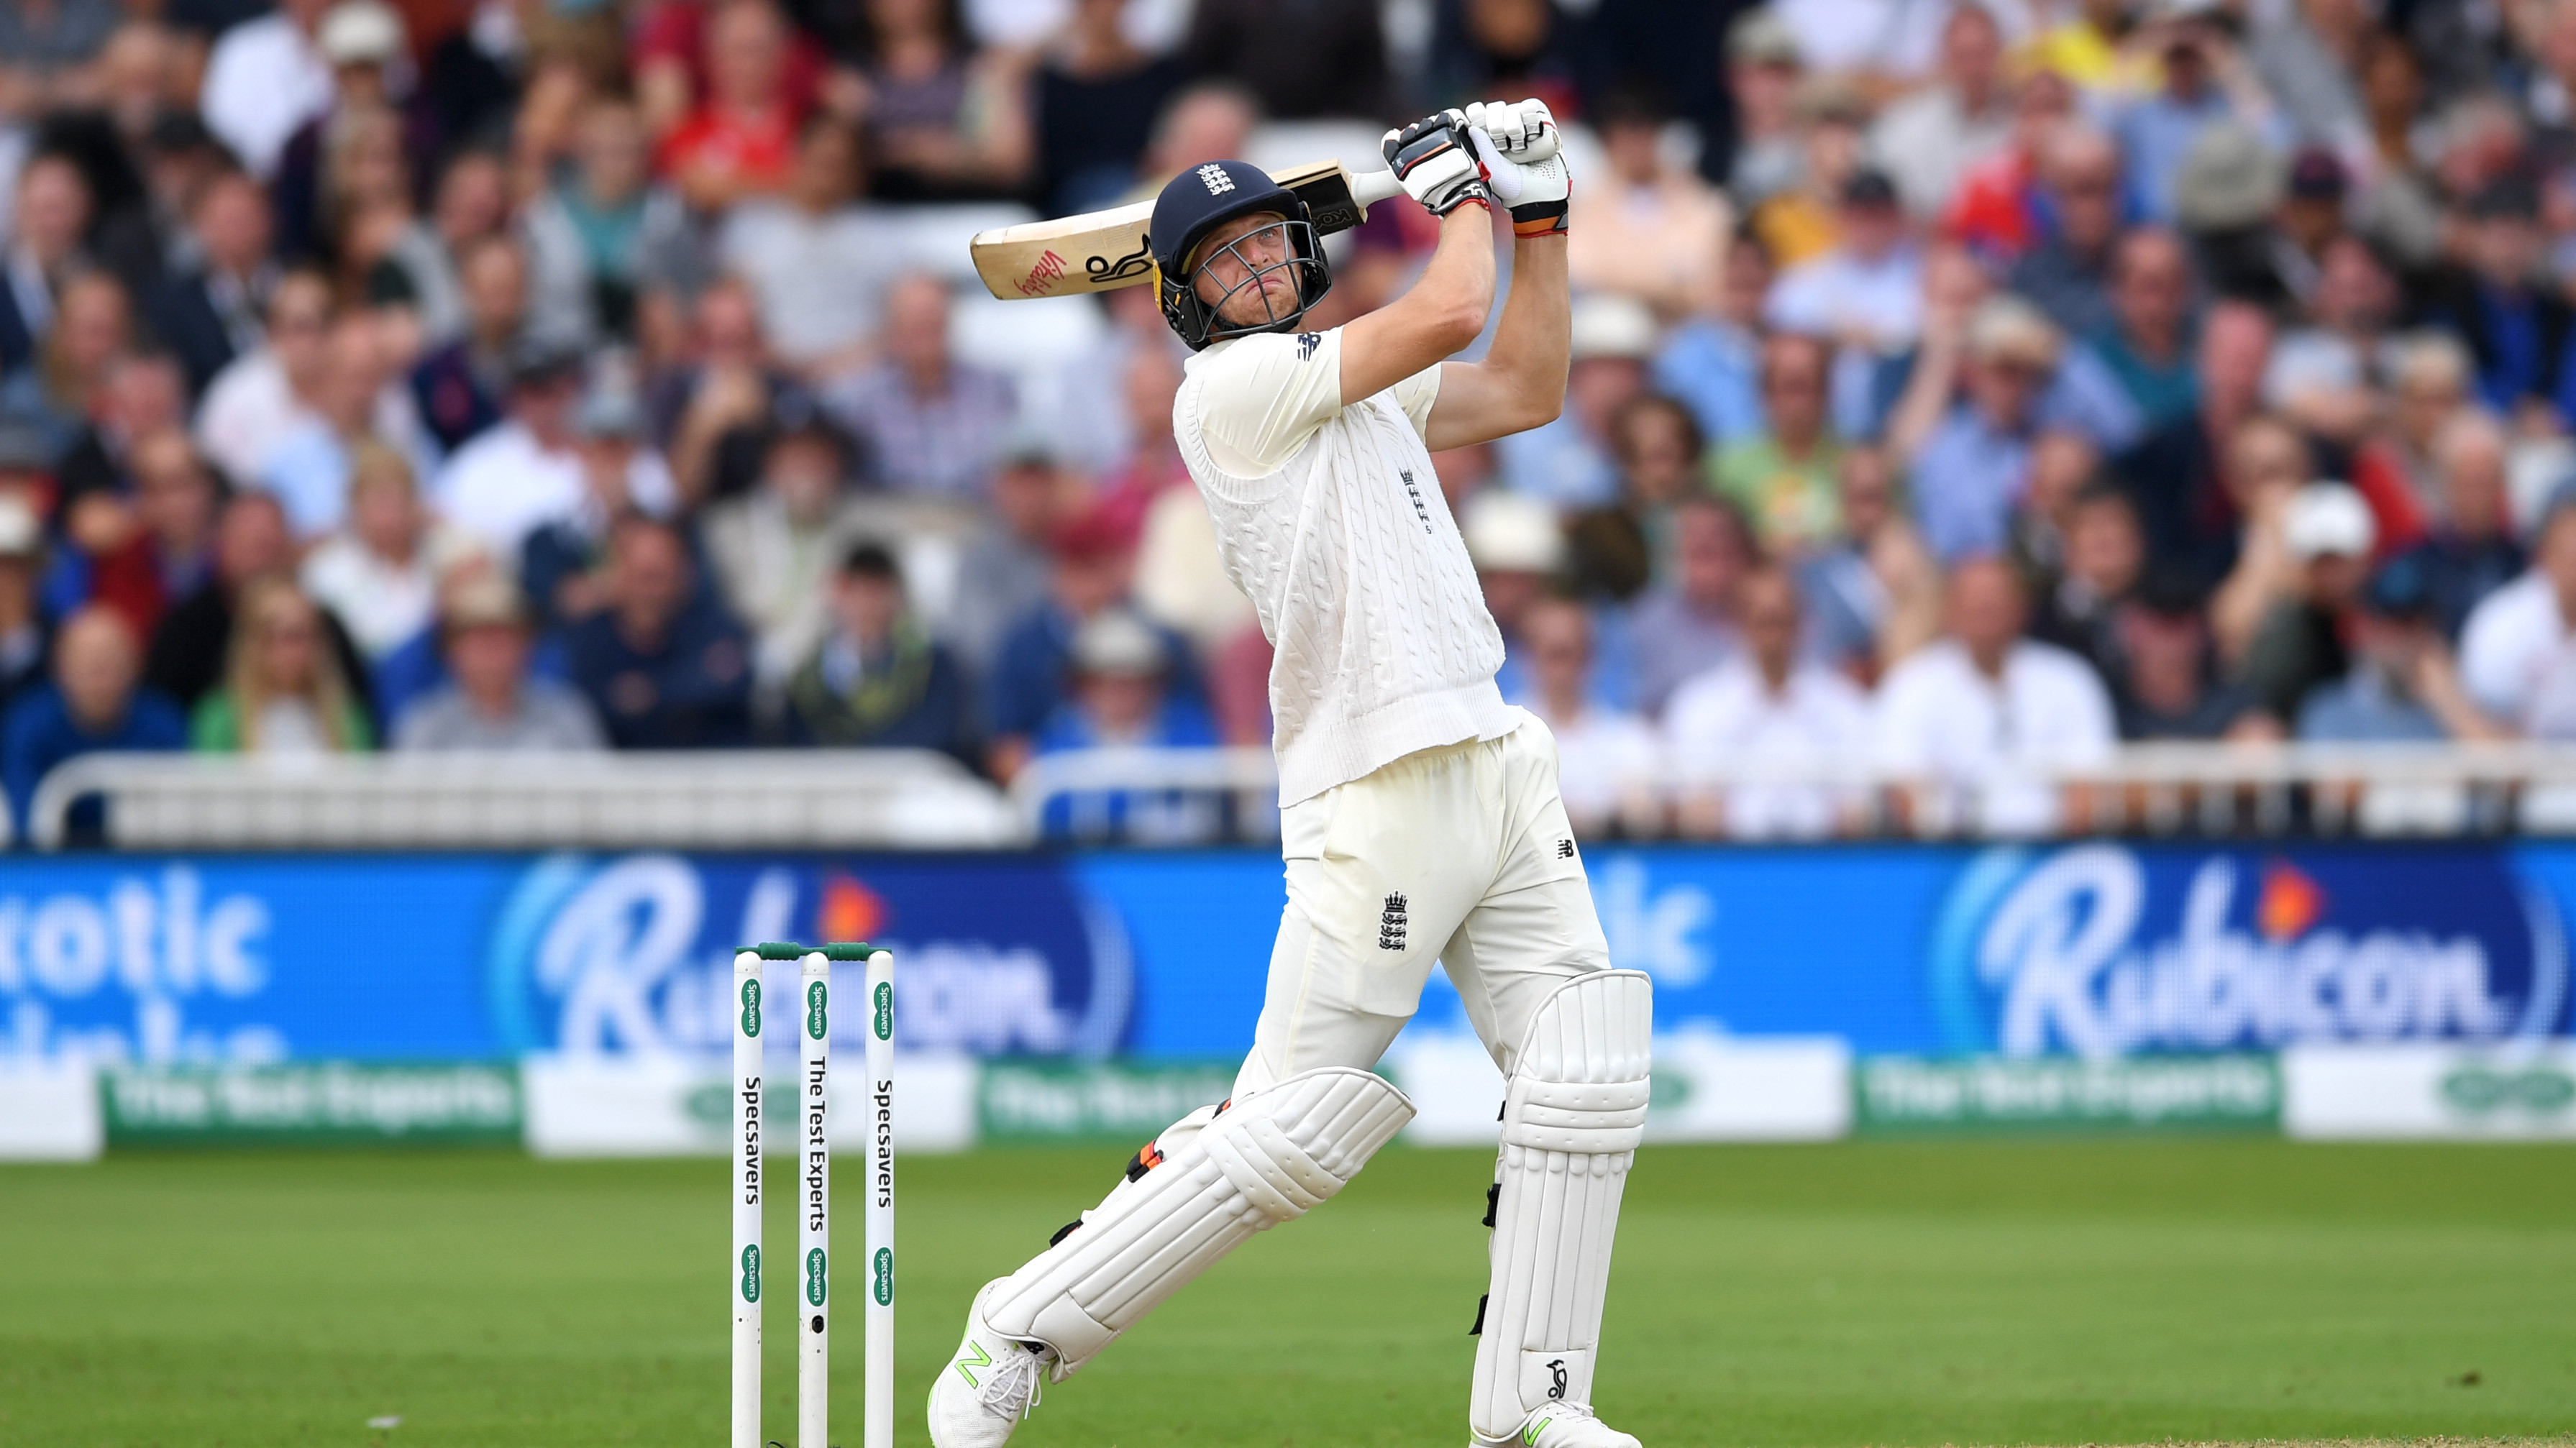 ENG vs IND 2018: It was important for us to turn up on Day 4 and show character, says Jos Buttler